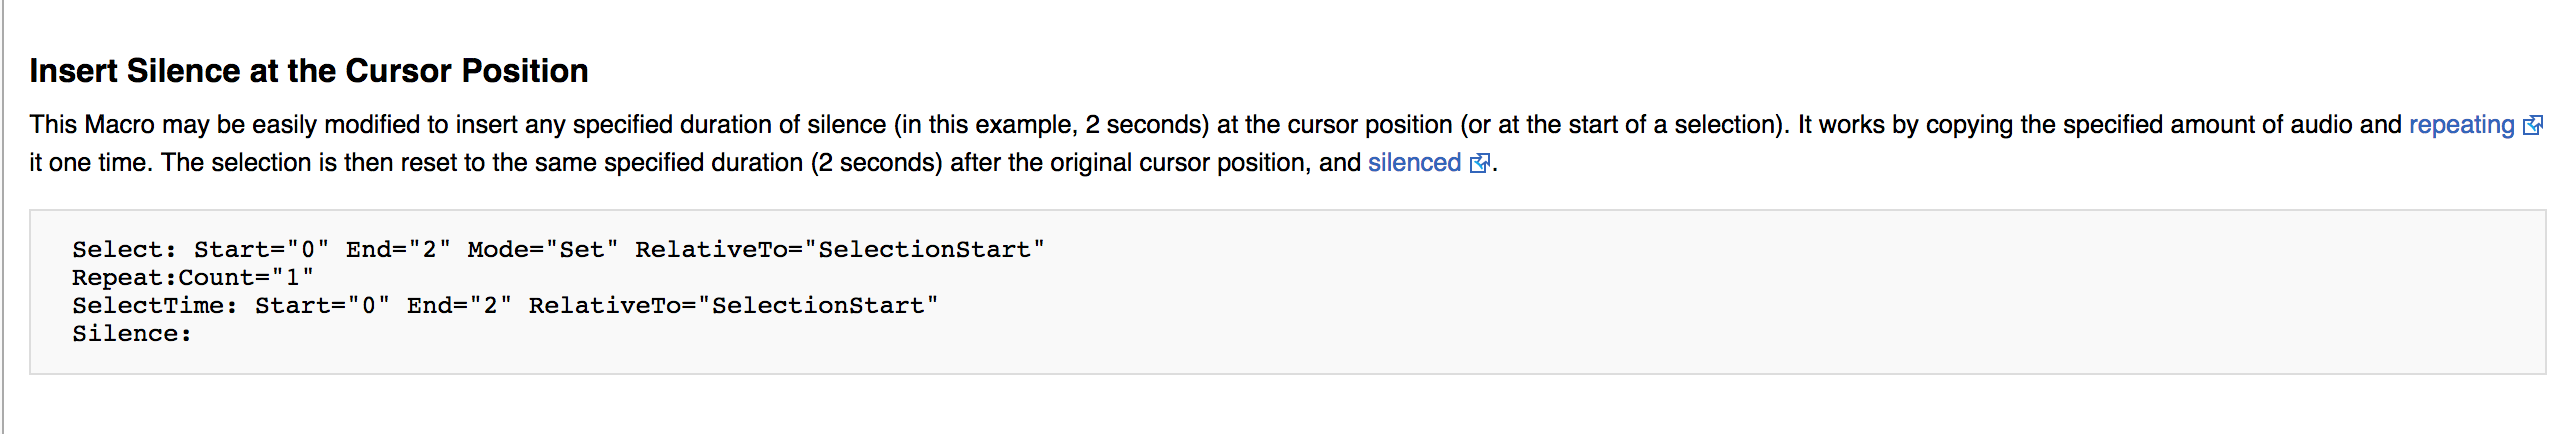 Instructions for creating silence at cursor position